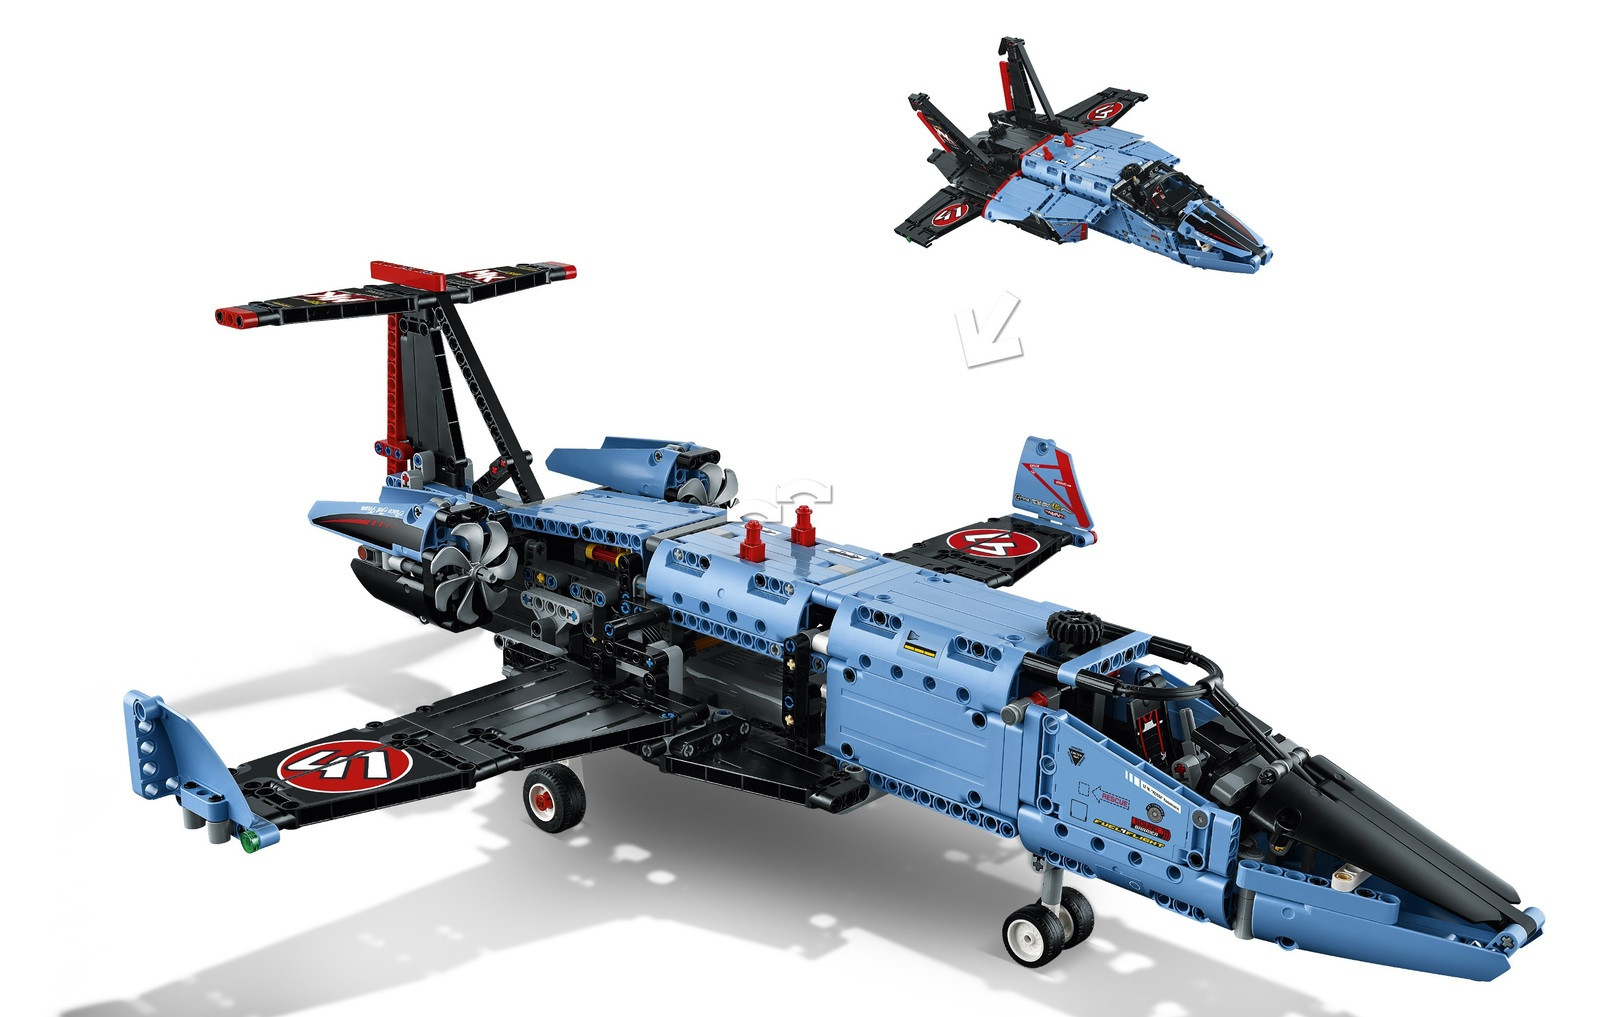 lego technic air race jet 42066 toy at mighty ape nz. Black Bedroom Furniture Sets. Home Design Ideas